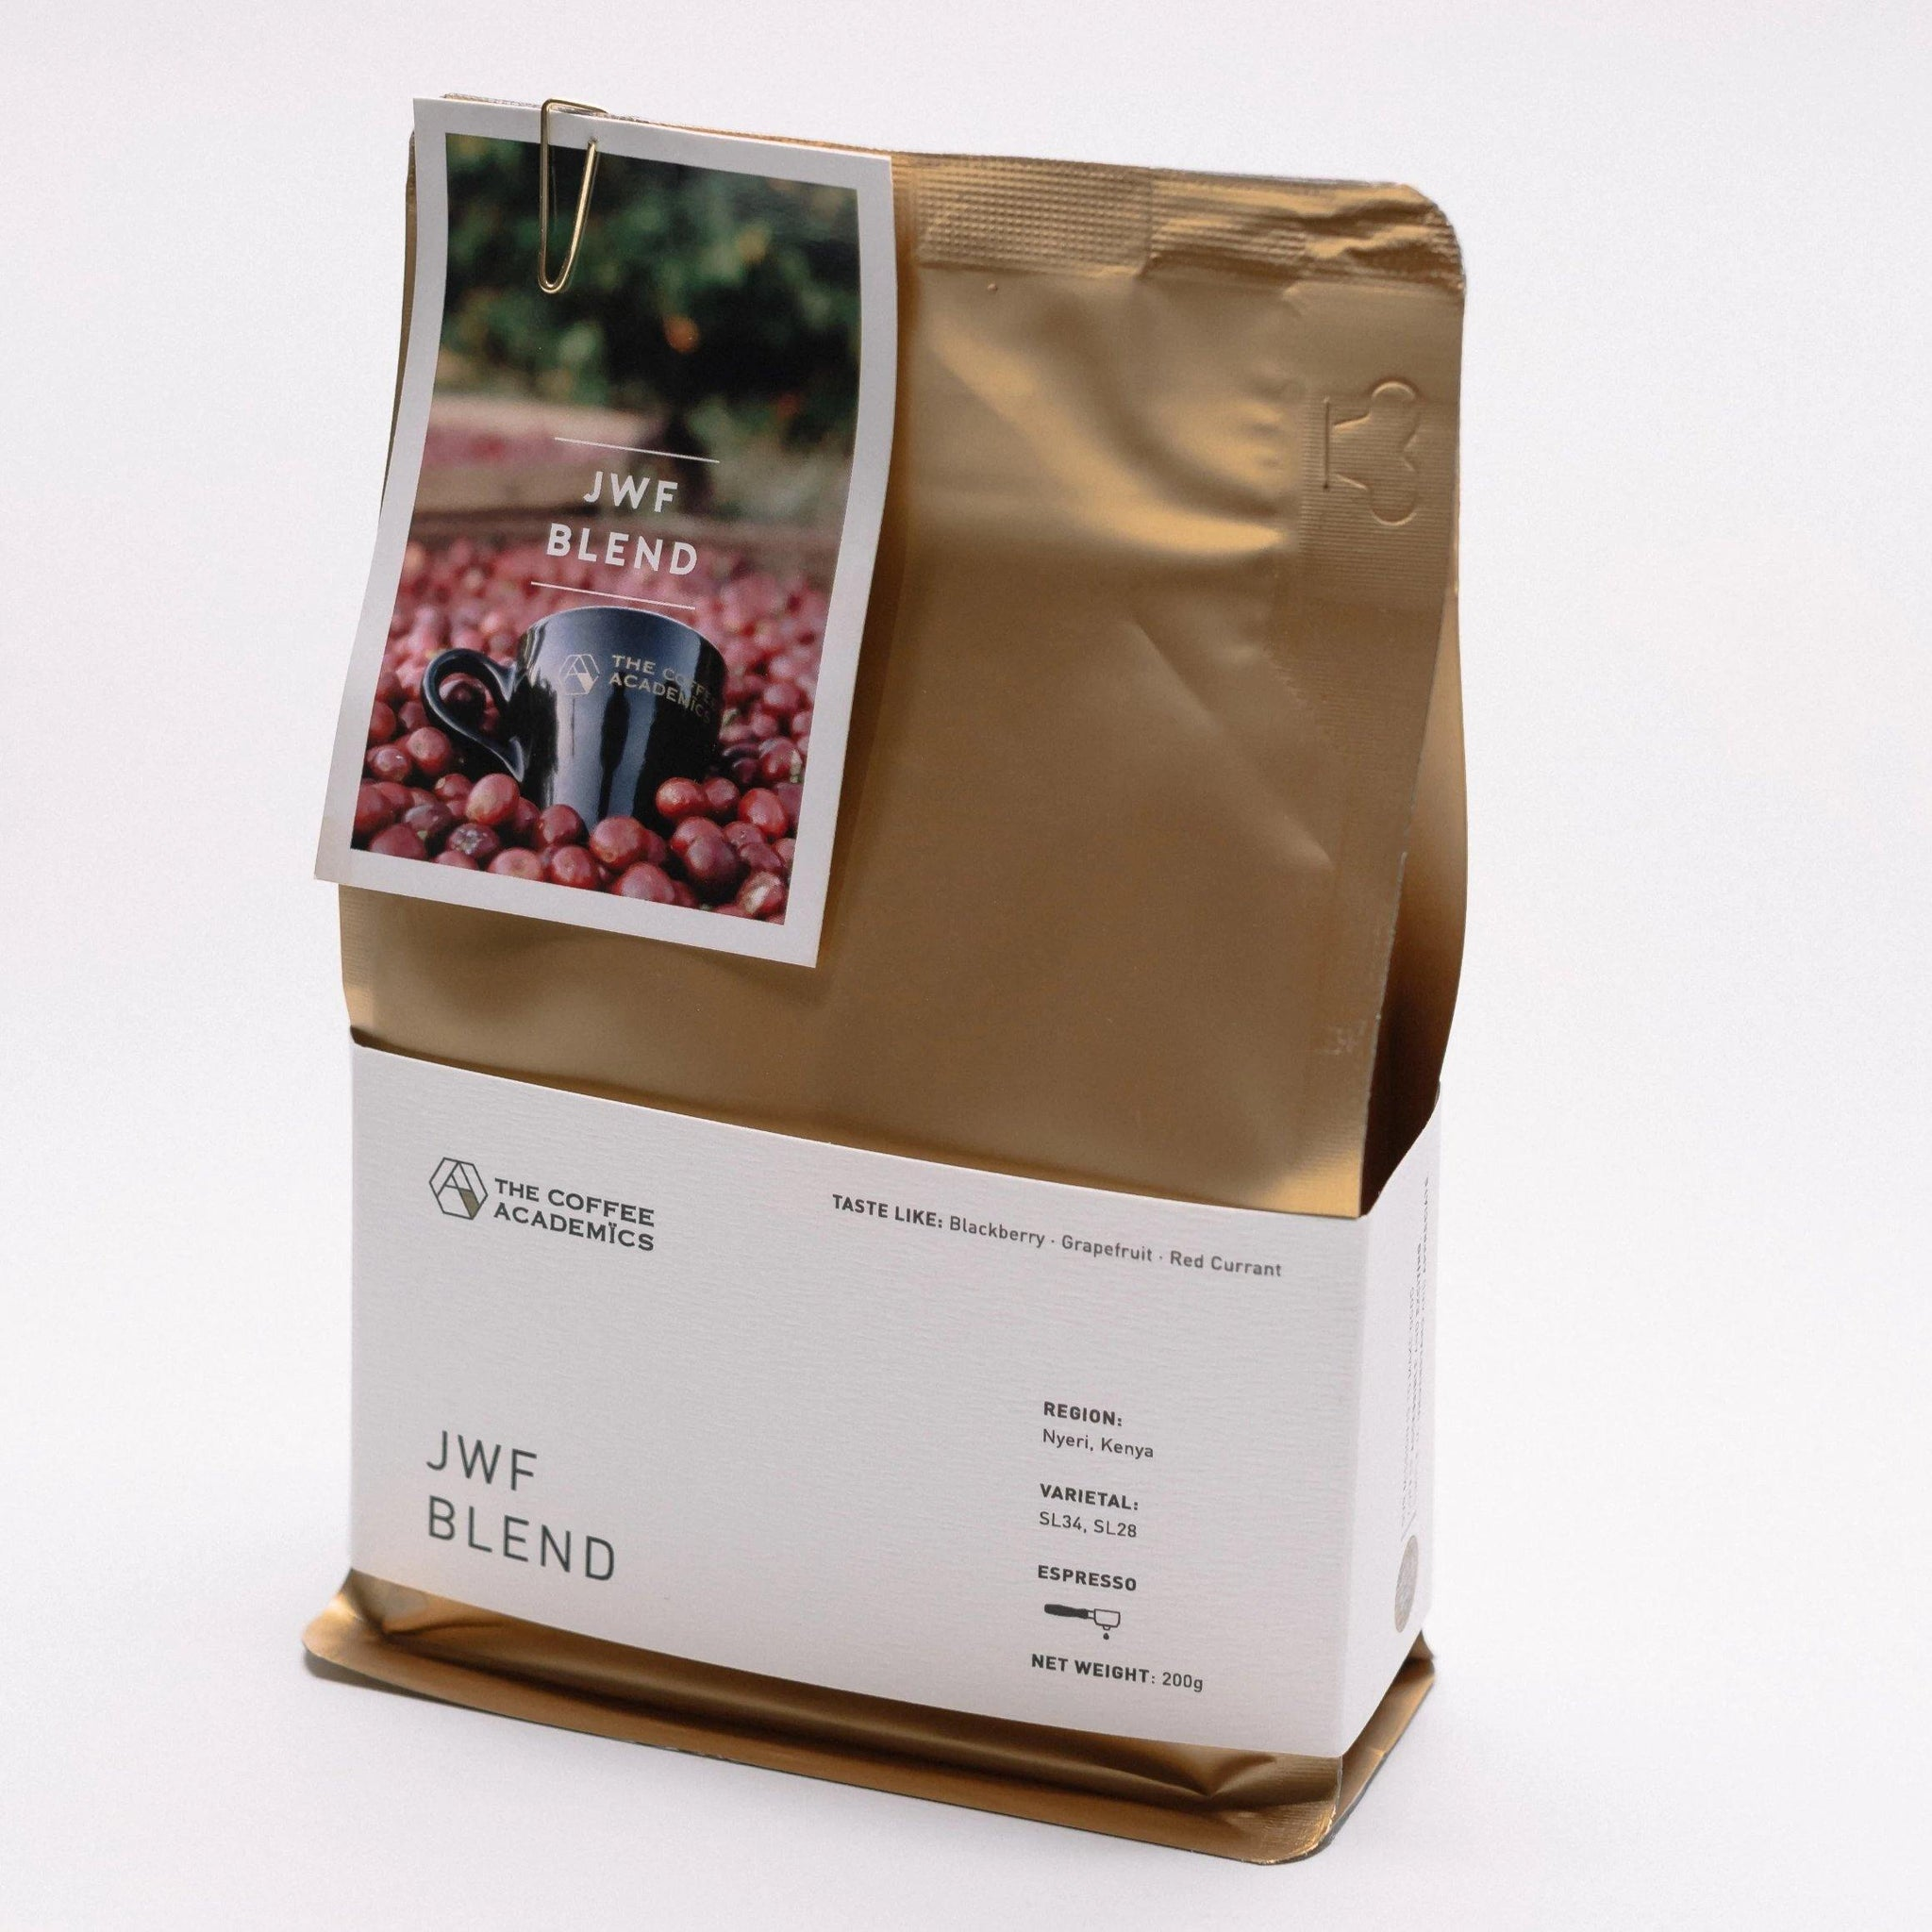 JWF Blend Roasted Bean (200g) - The Coffee Academics